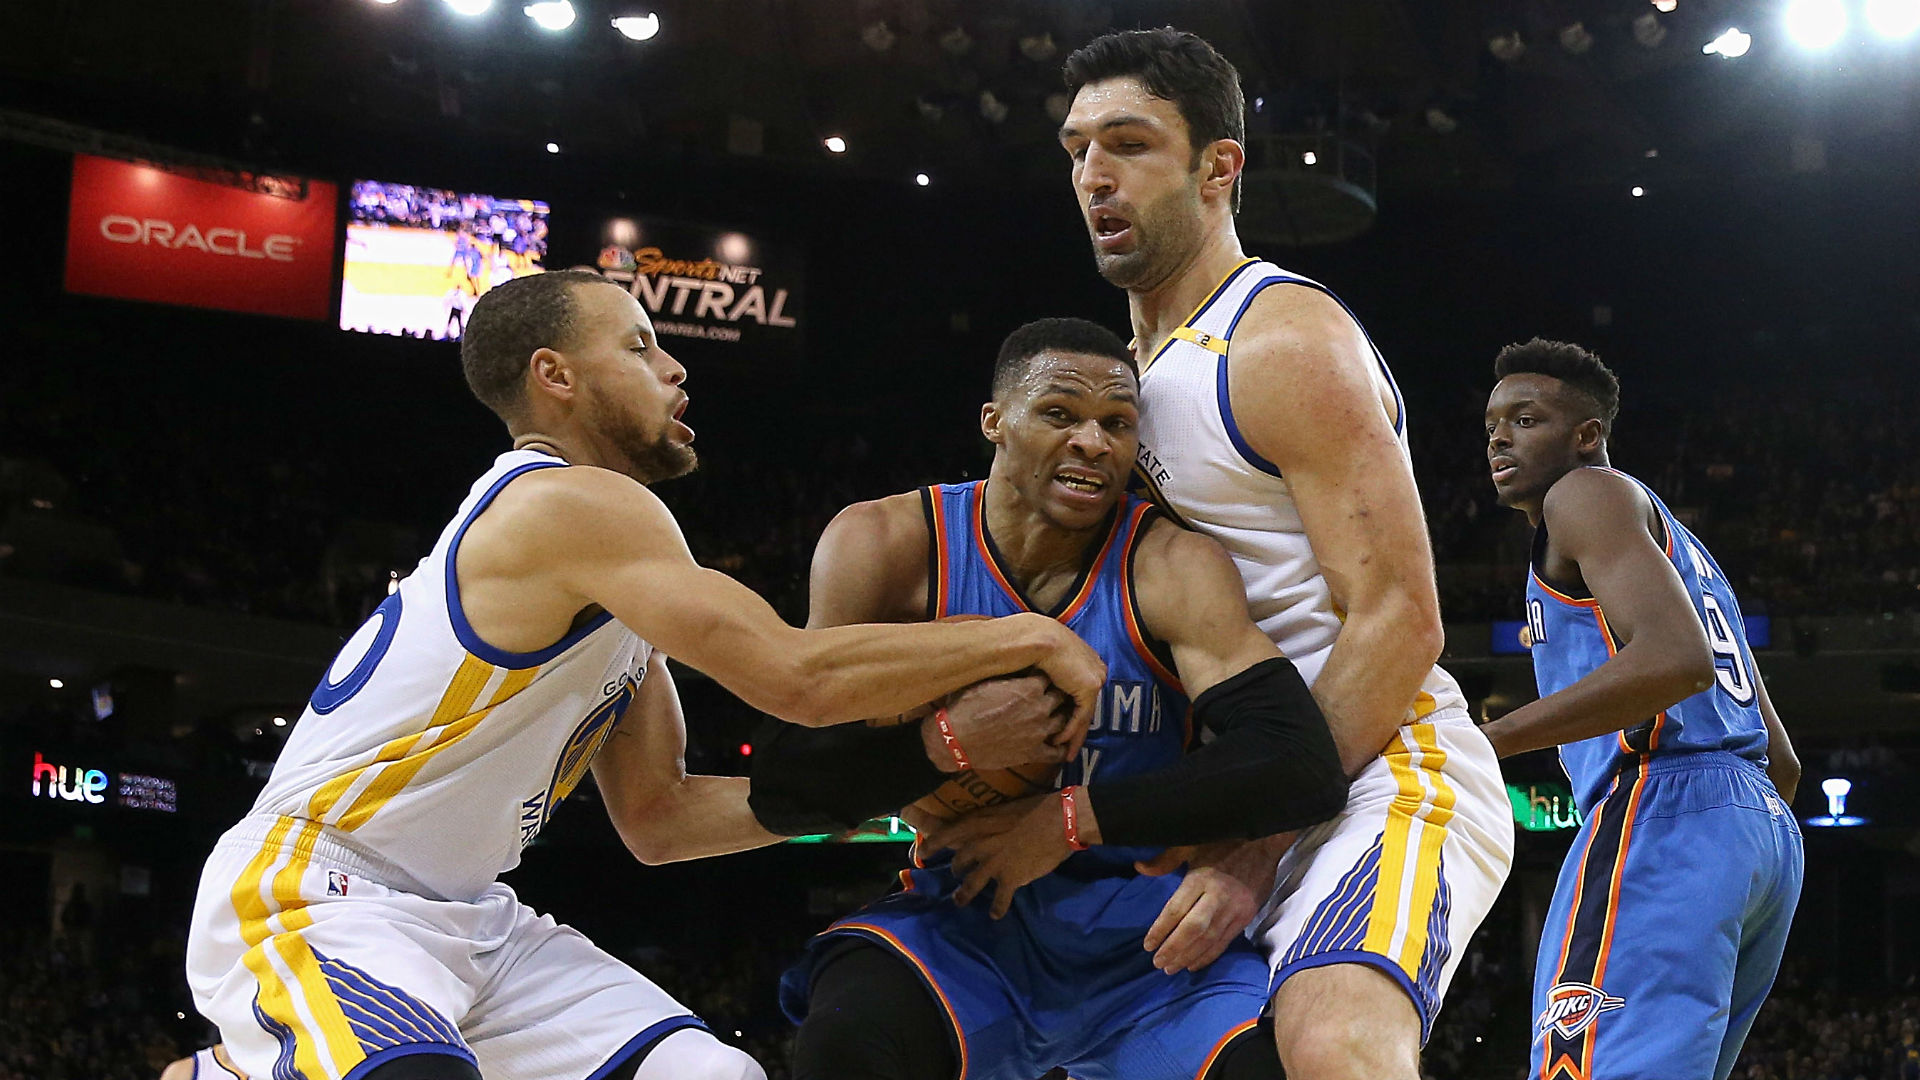 Russell Westbrook, Paul George call out Zaza Pachulia after risky fall